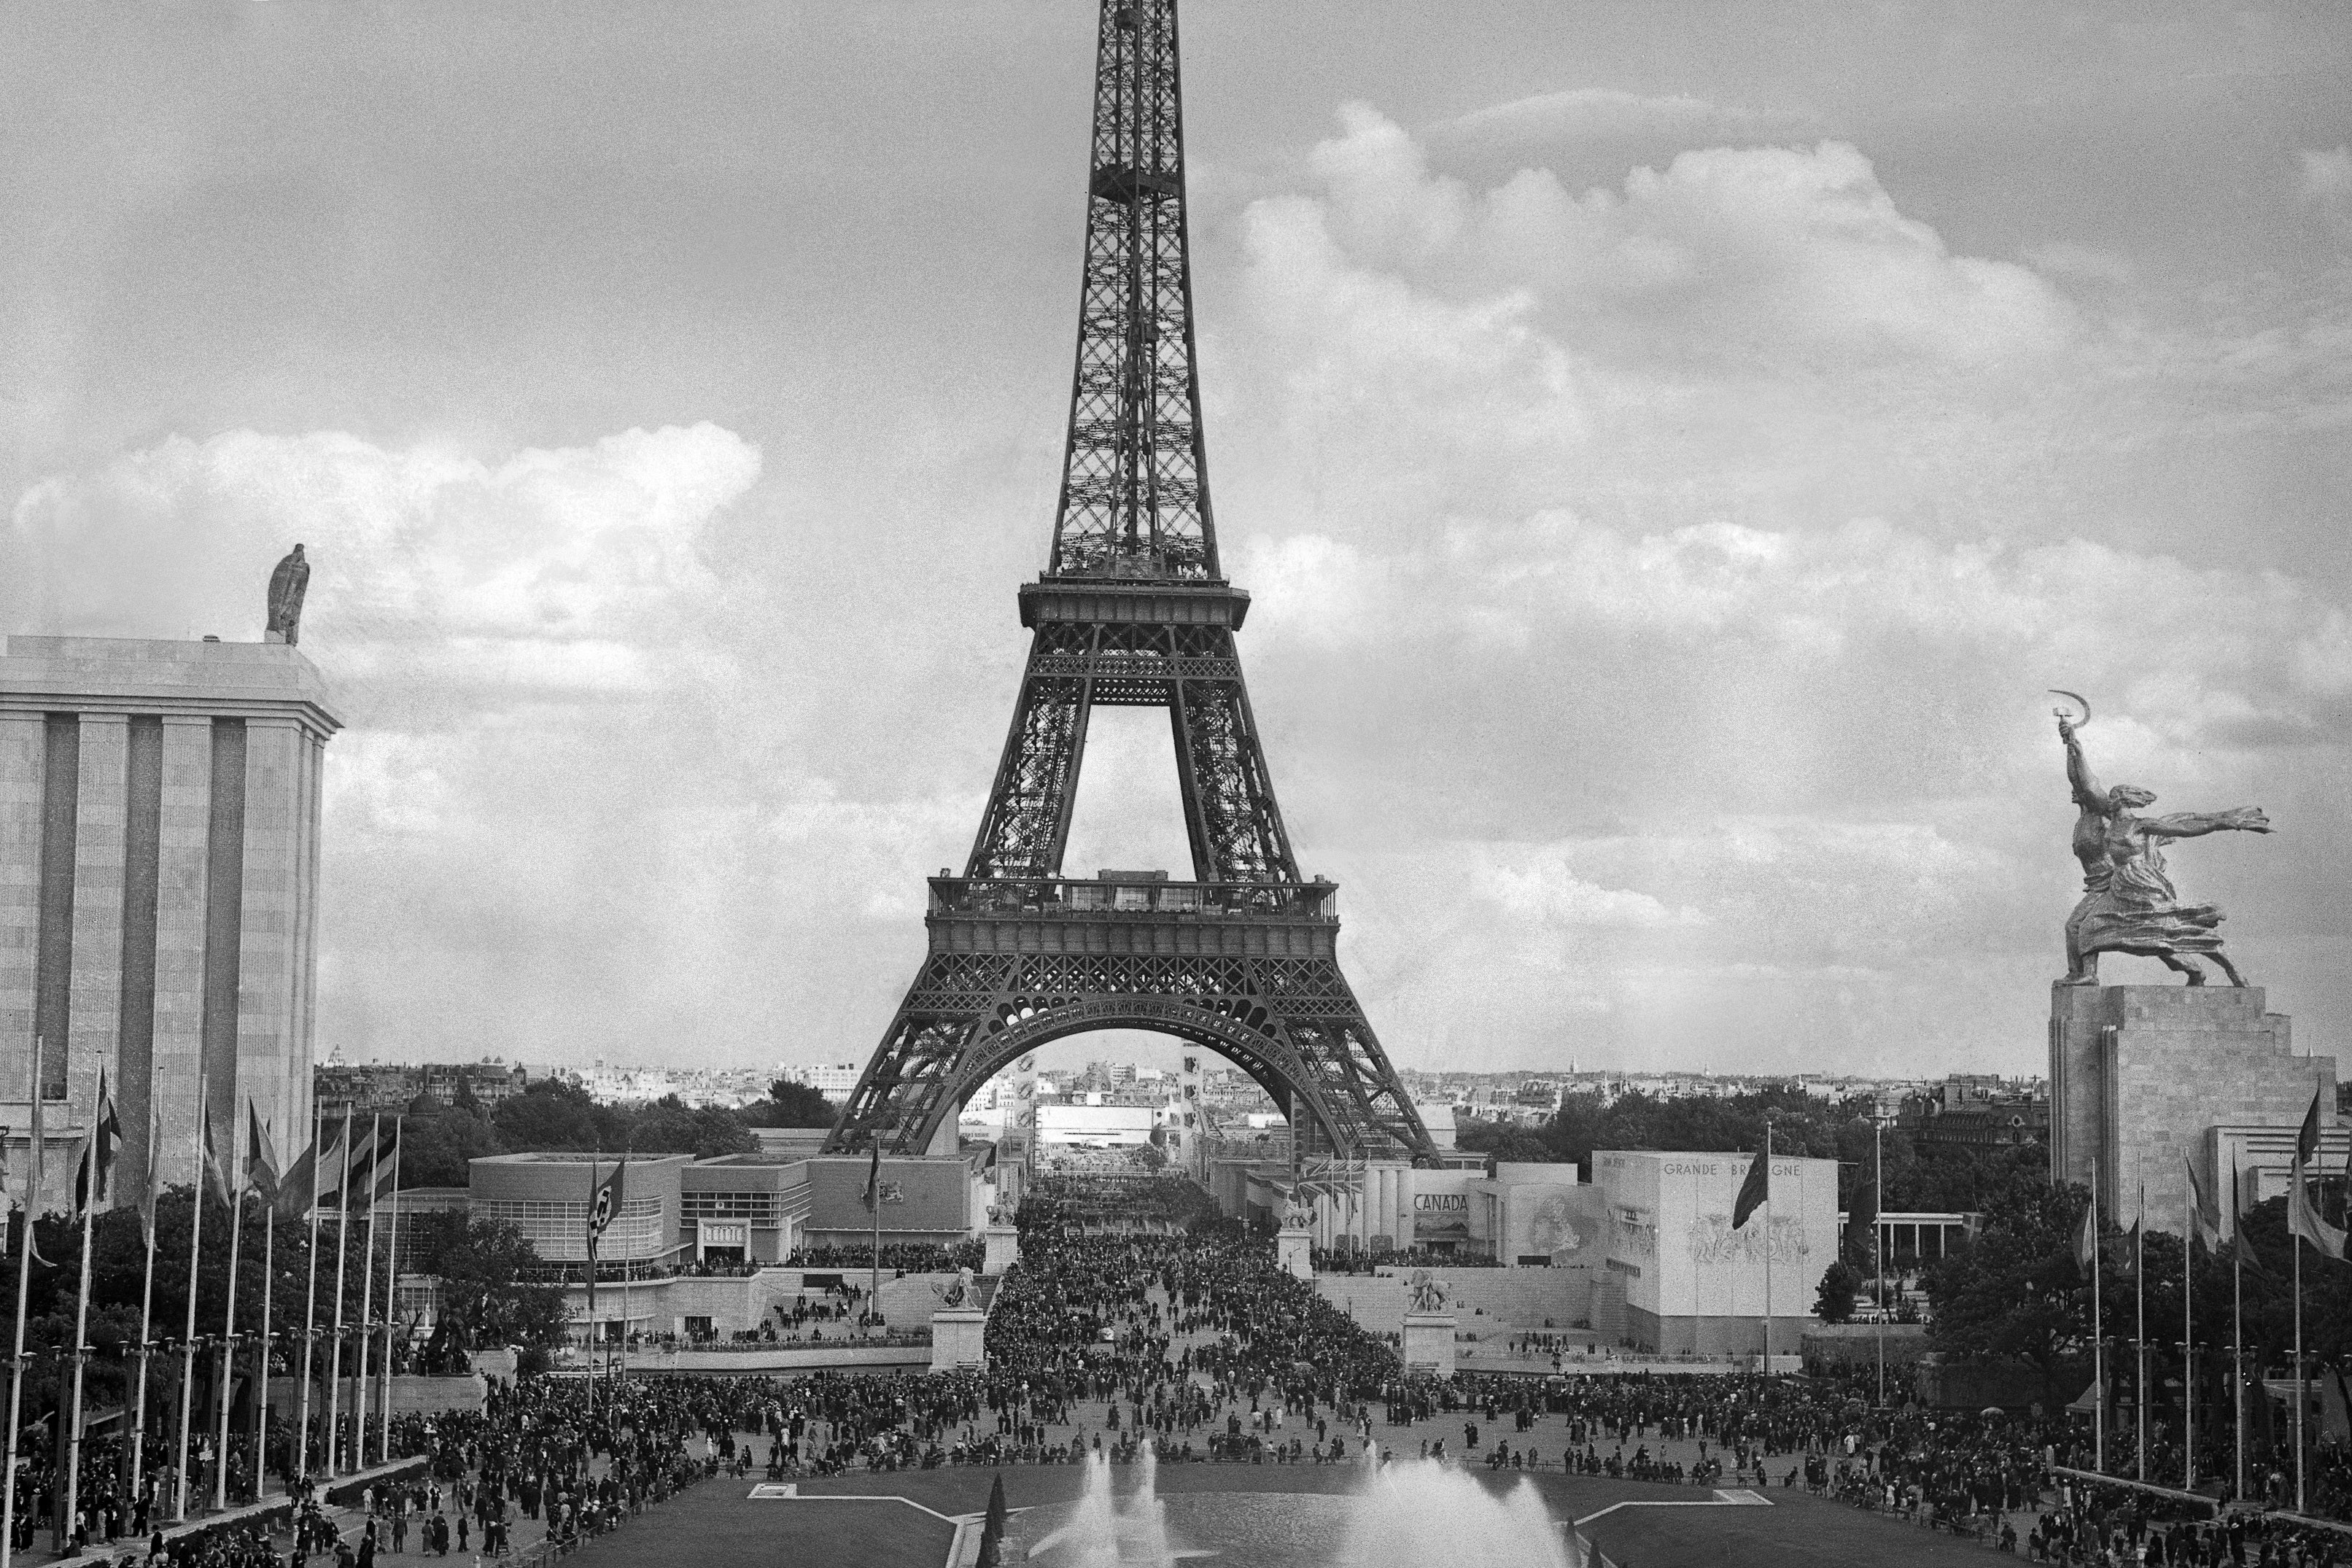 exposition_universelle_1937.jpg